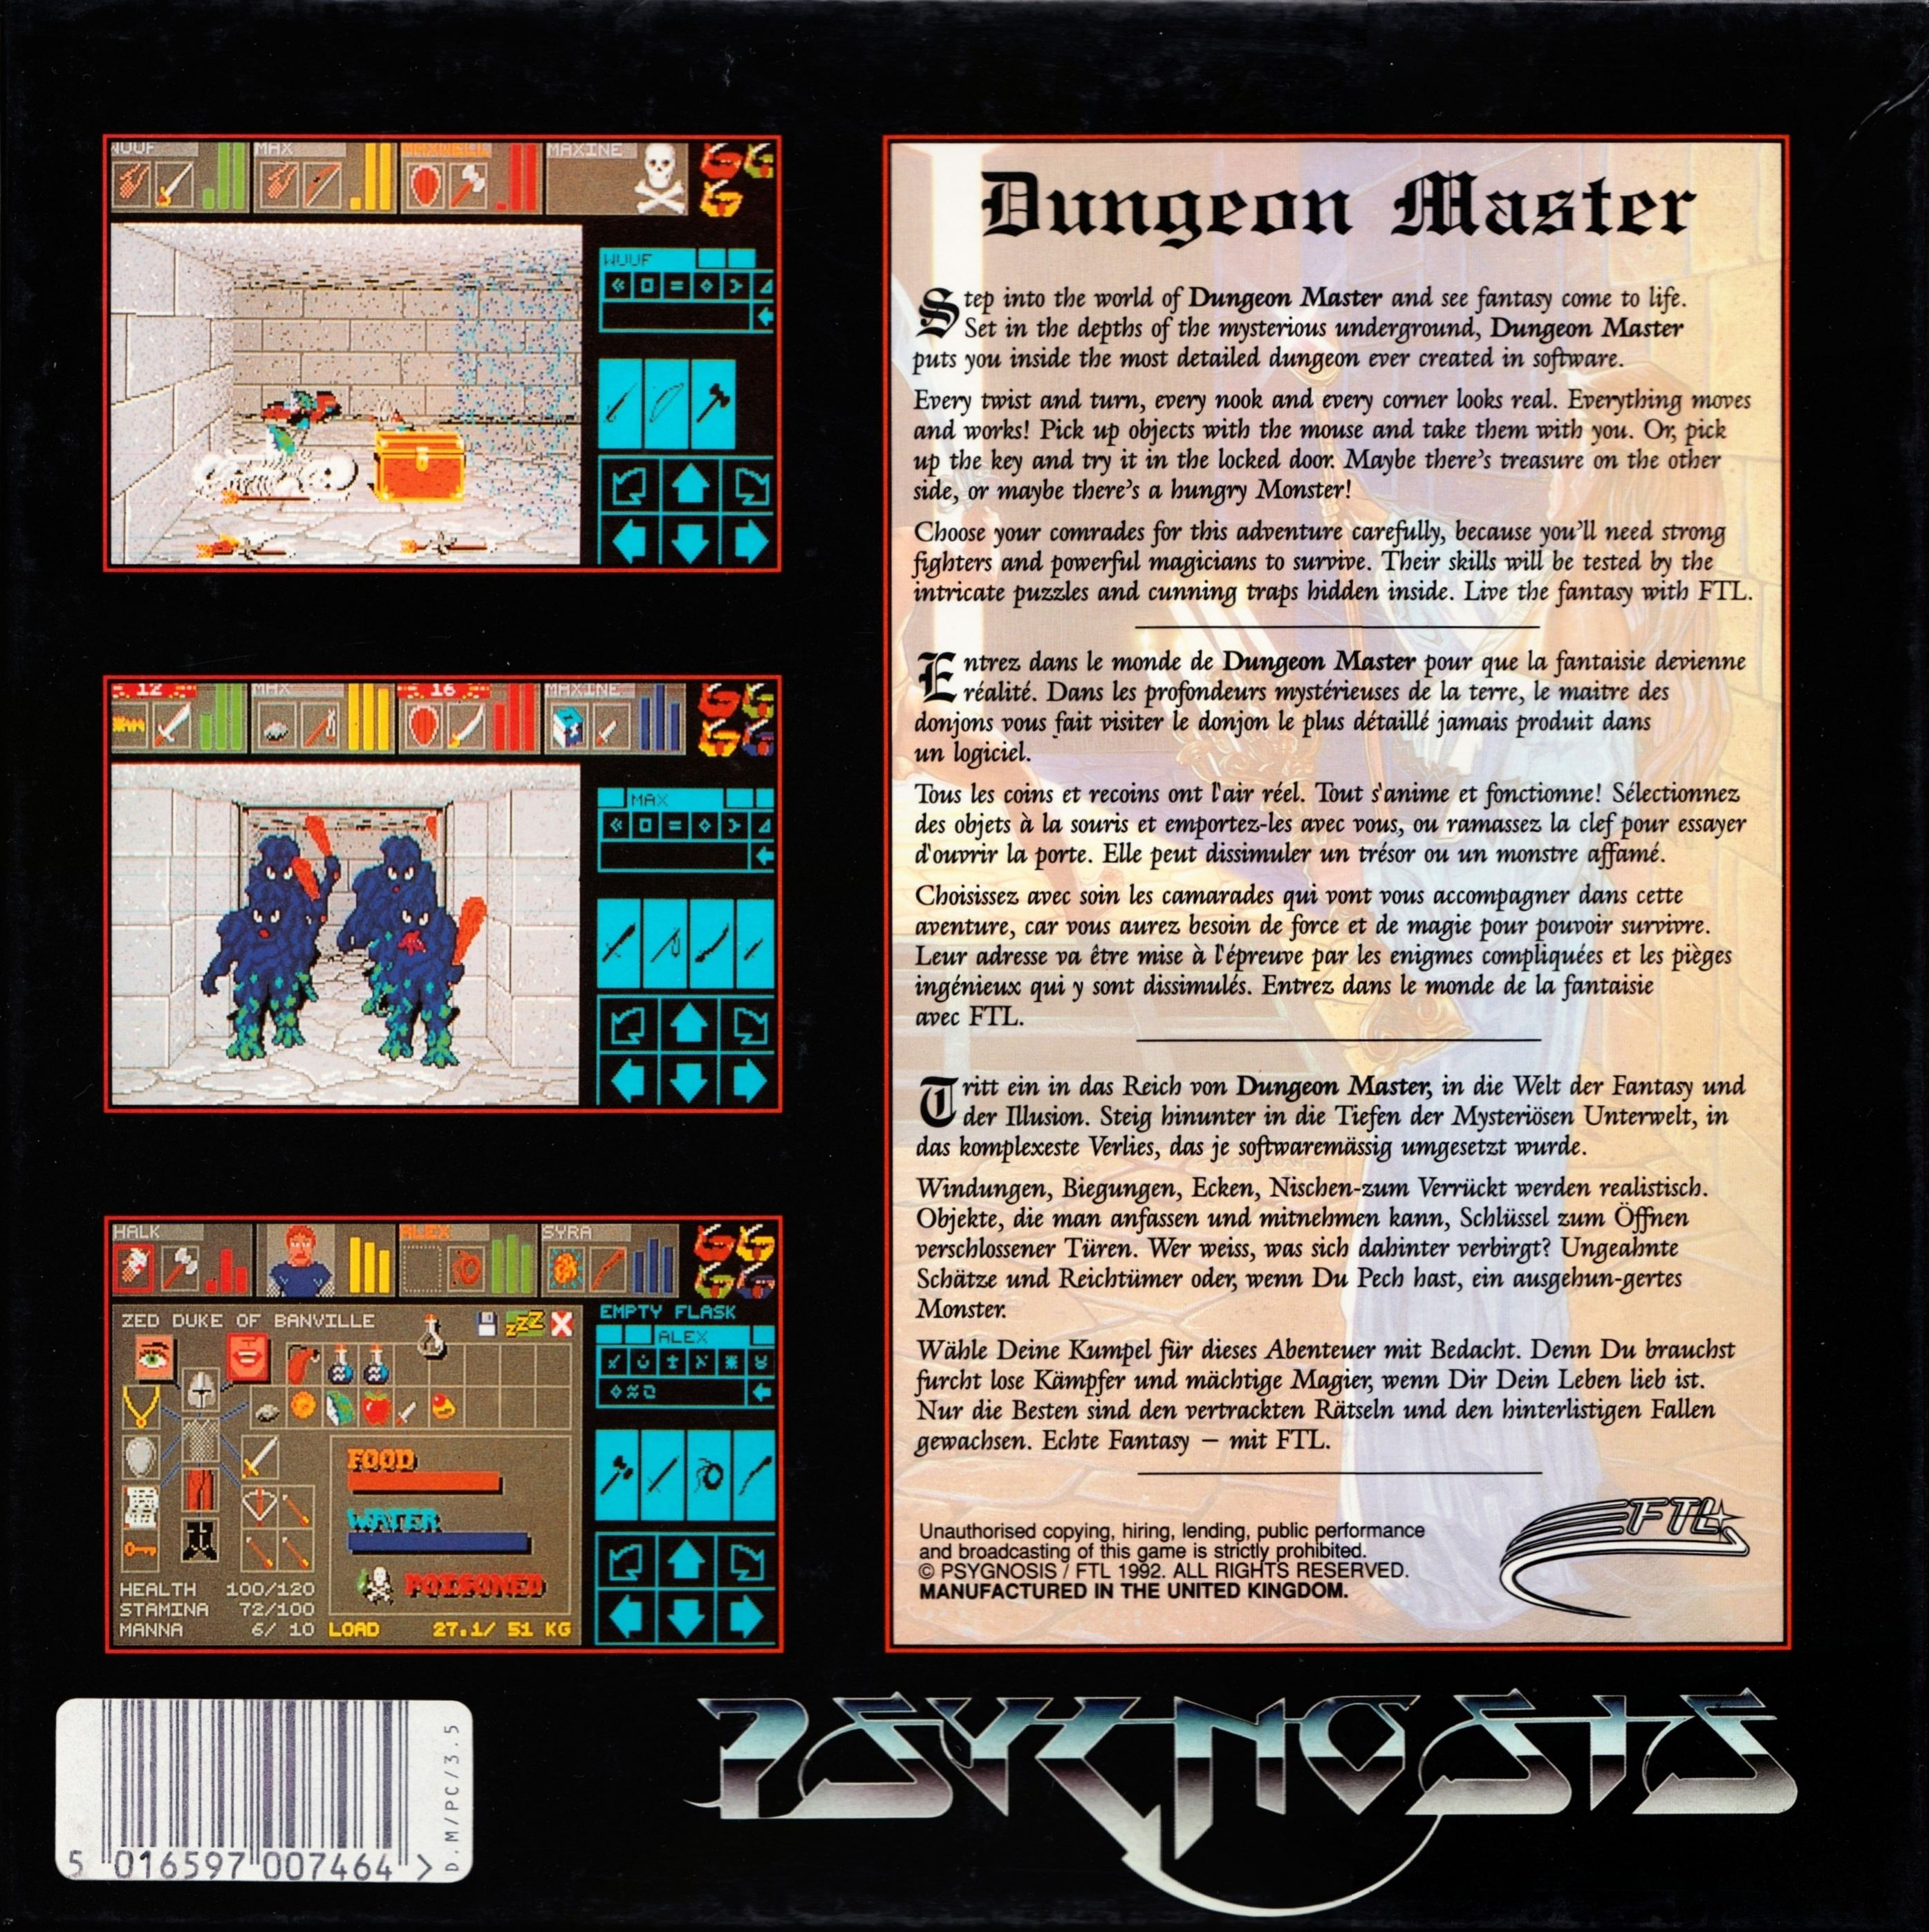 Game - Dungeon Master - DE - PC - Psygnosis - Box - Back - Scan